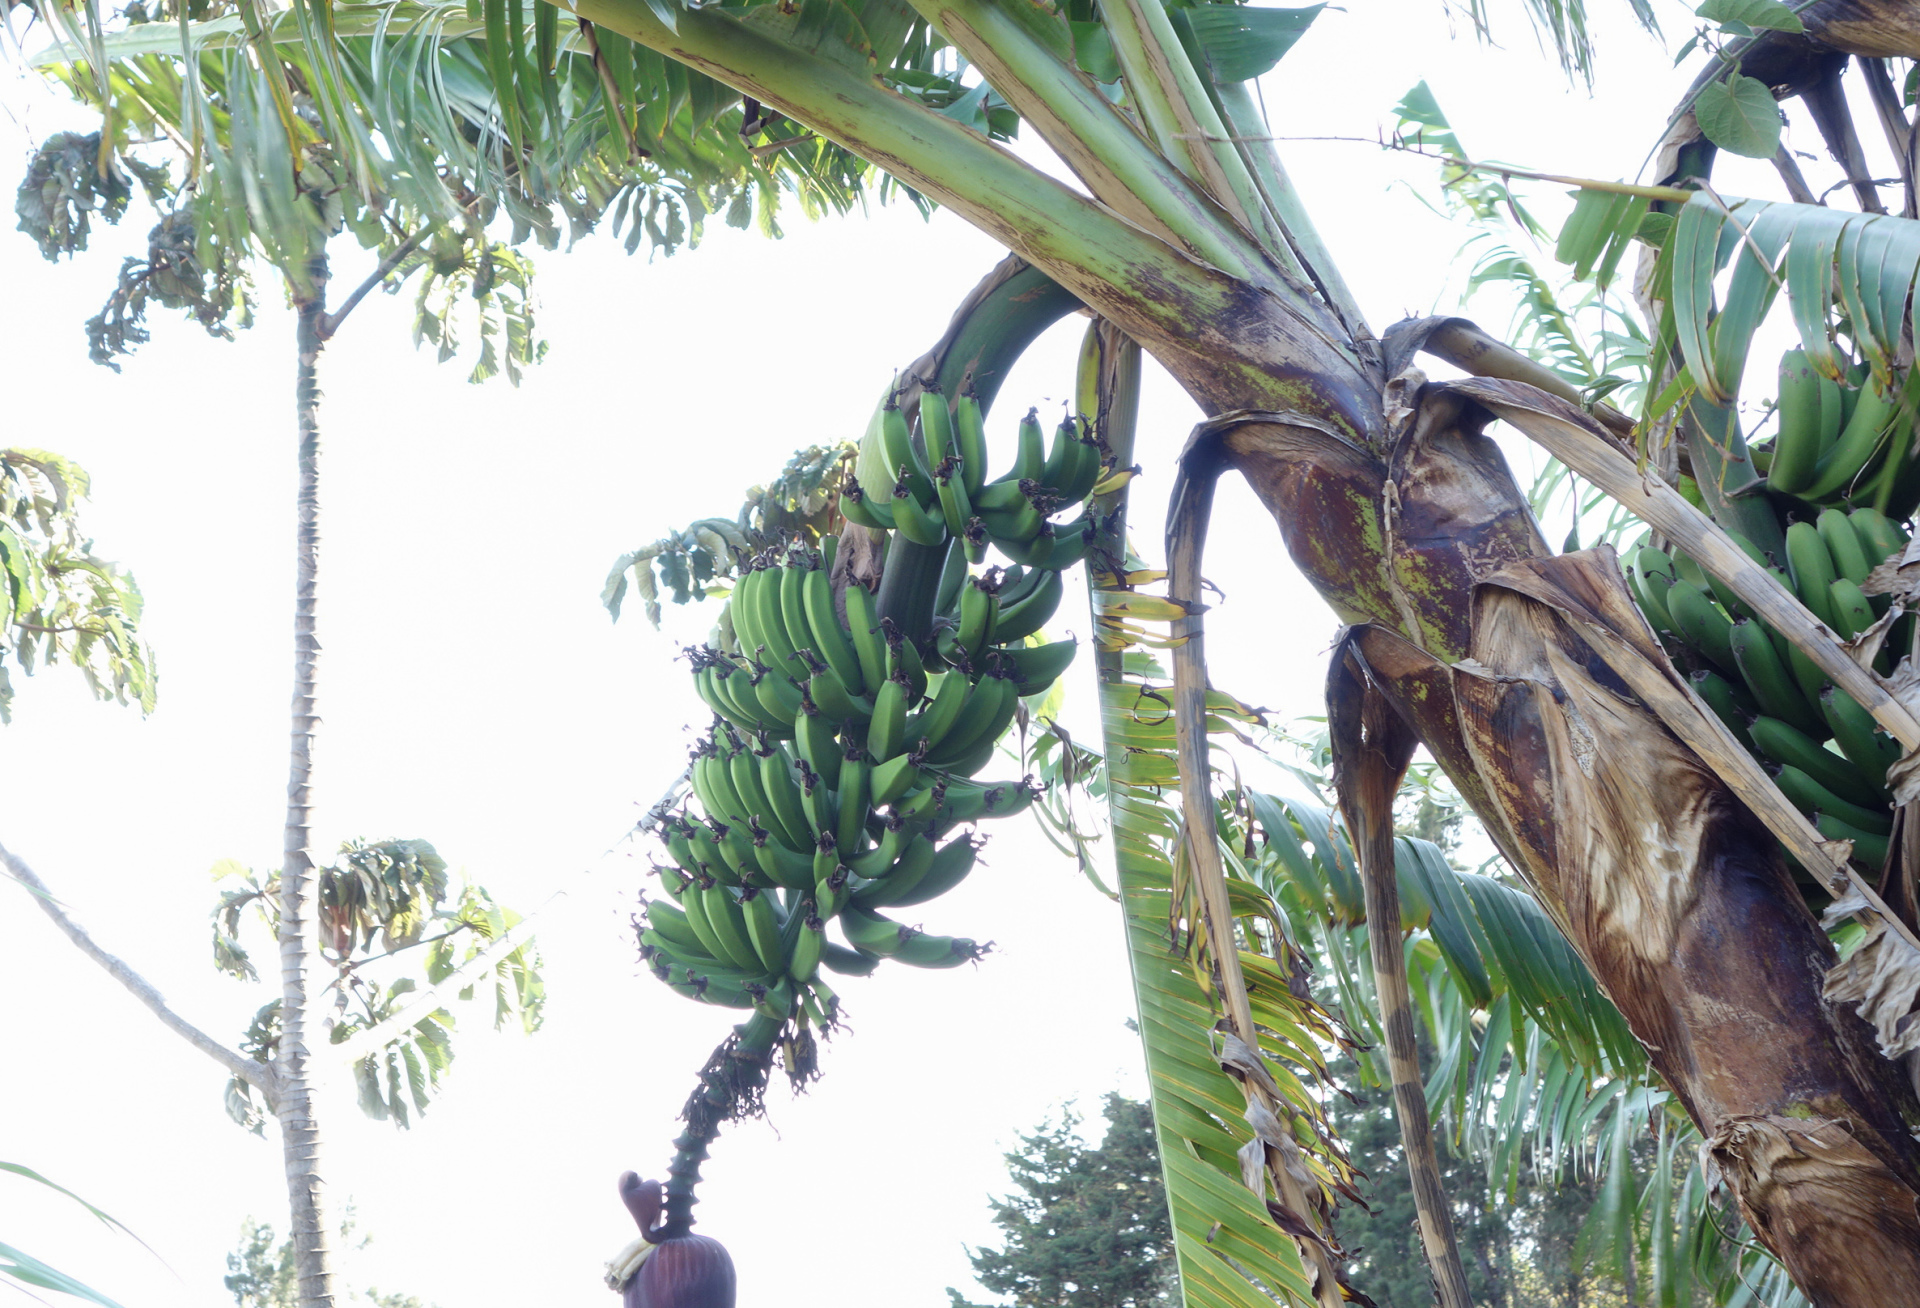 banana tree showing the fruit before being ripe on the tour